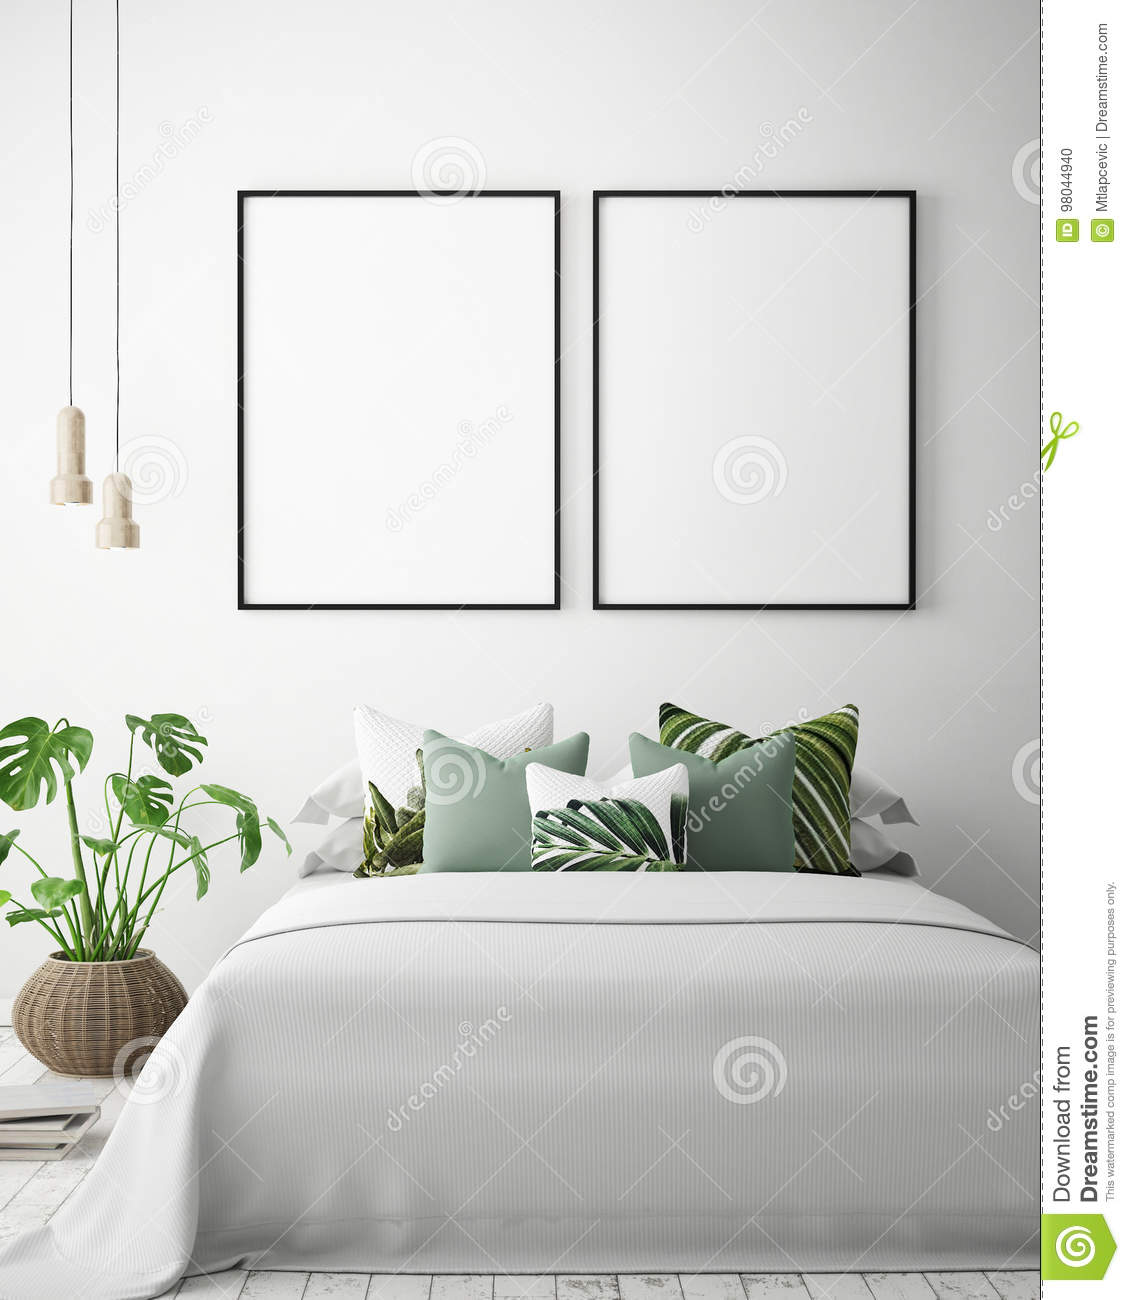 Bedroom Decor Picture Frames Small Bedroom Chairs Ikea Little Boy Bedroom Decorating Ideas Bedroom Black And Purple: Caribbean Cartoons, Illustrations & Vector Stock Images